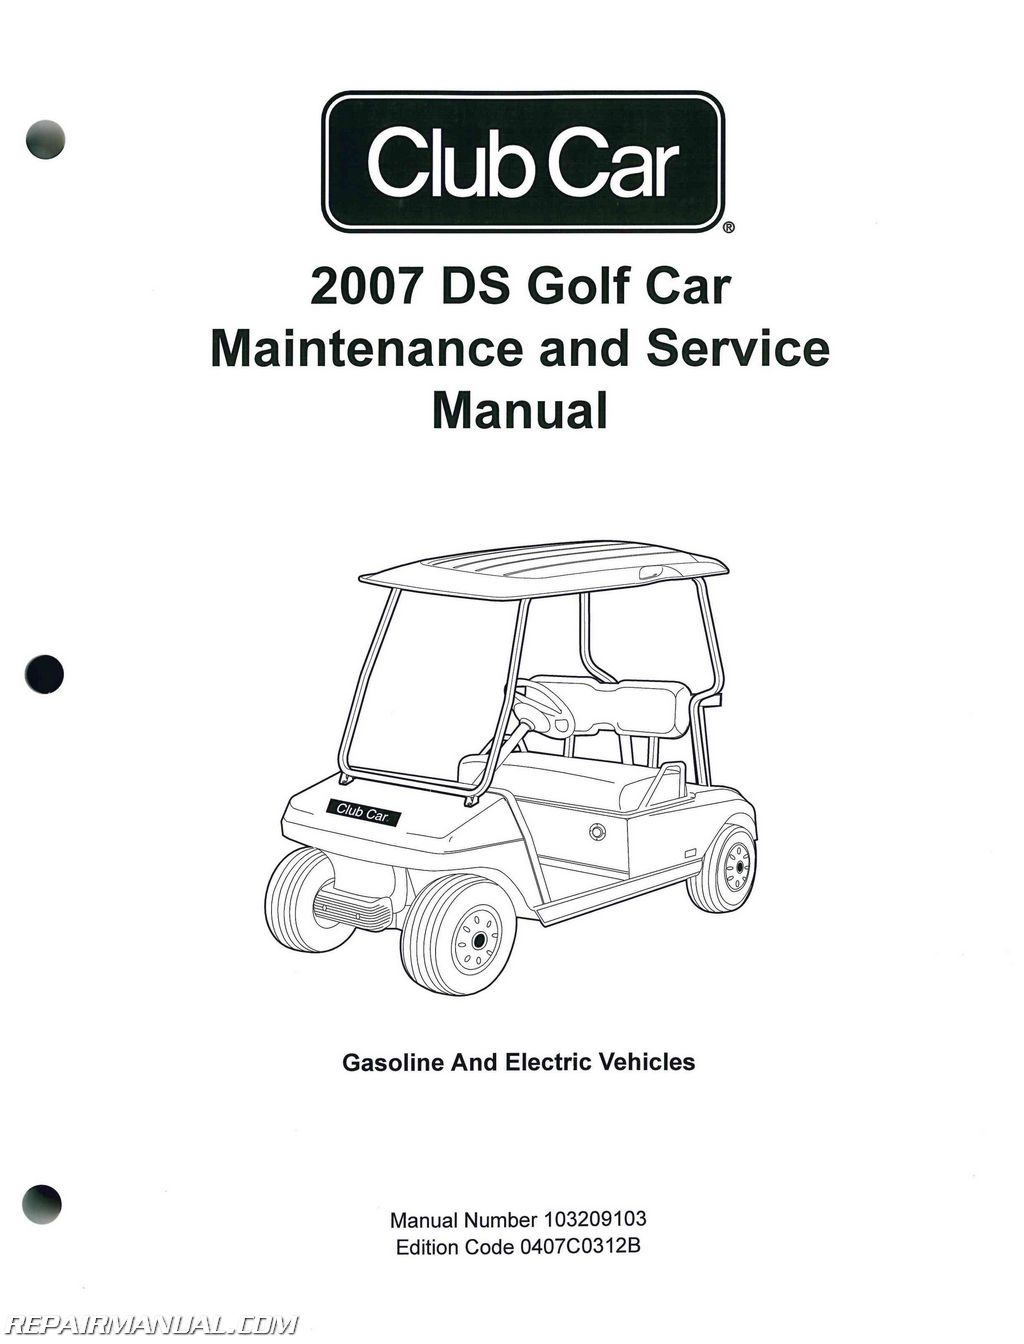 2007 Club Car DS Golf Car Gas And Electric Golf Cart Service Manual 1990 club car gas wiring diagram on 1990 download wirning diagrams club car v glide wiring diagram at n-0.co